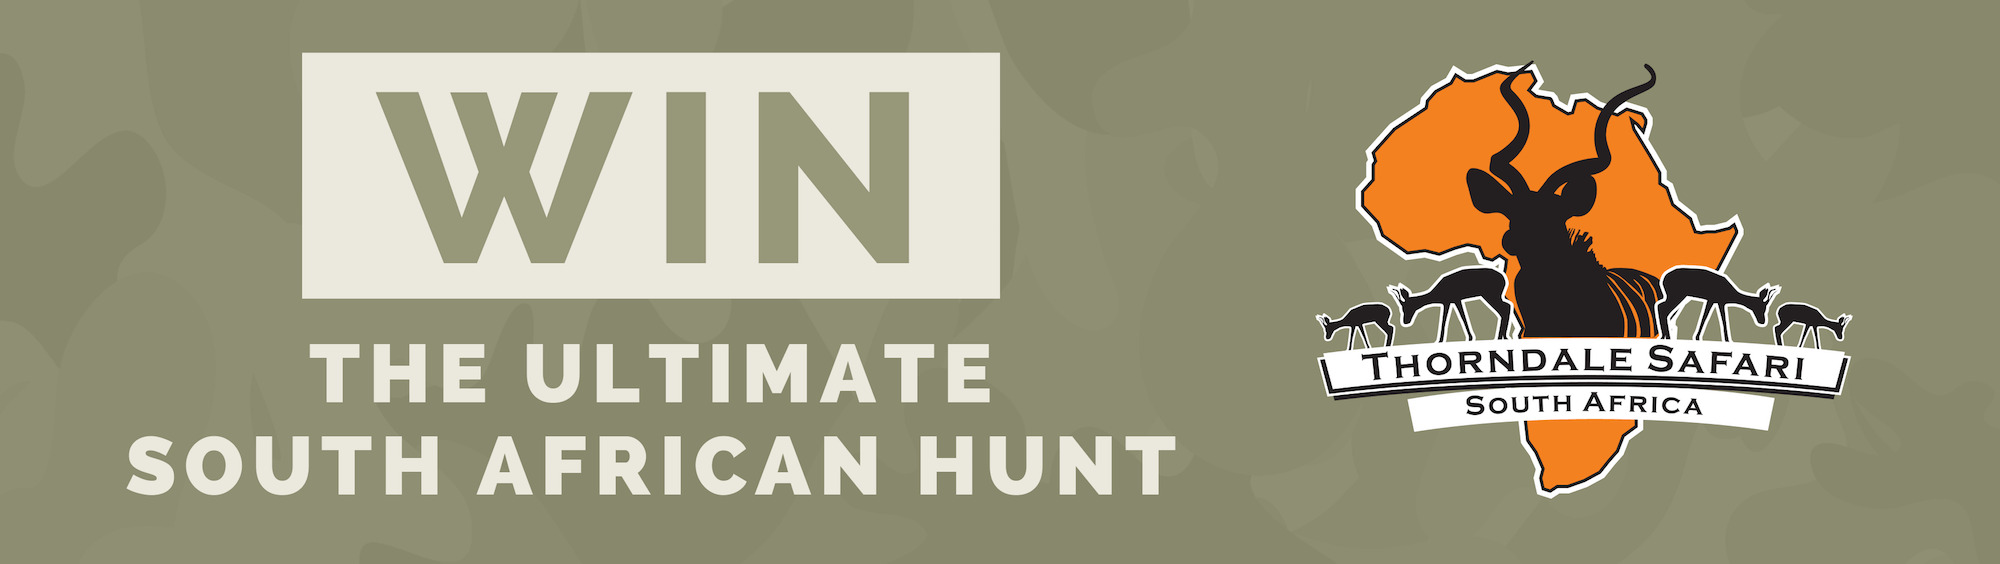 Win the ultimate South African hunt